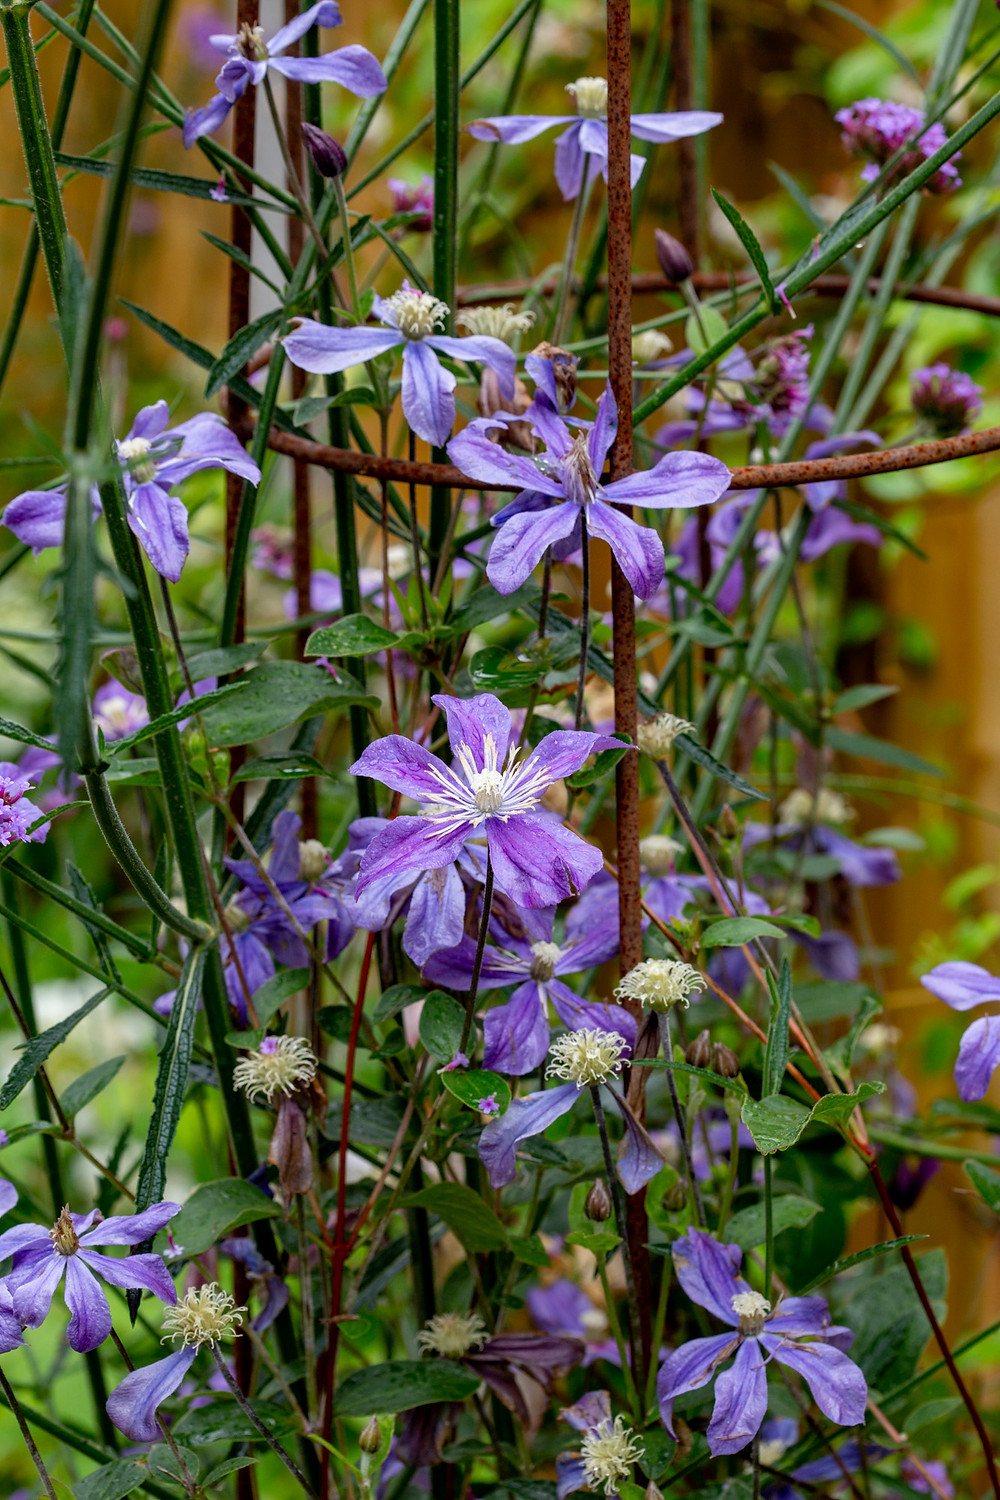 Clematis brings the garden to life